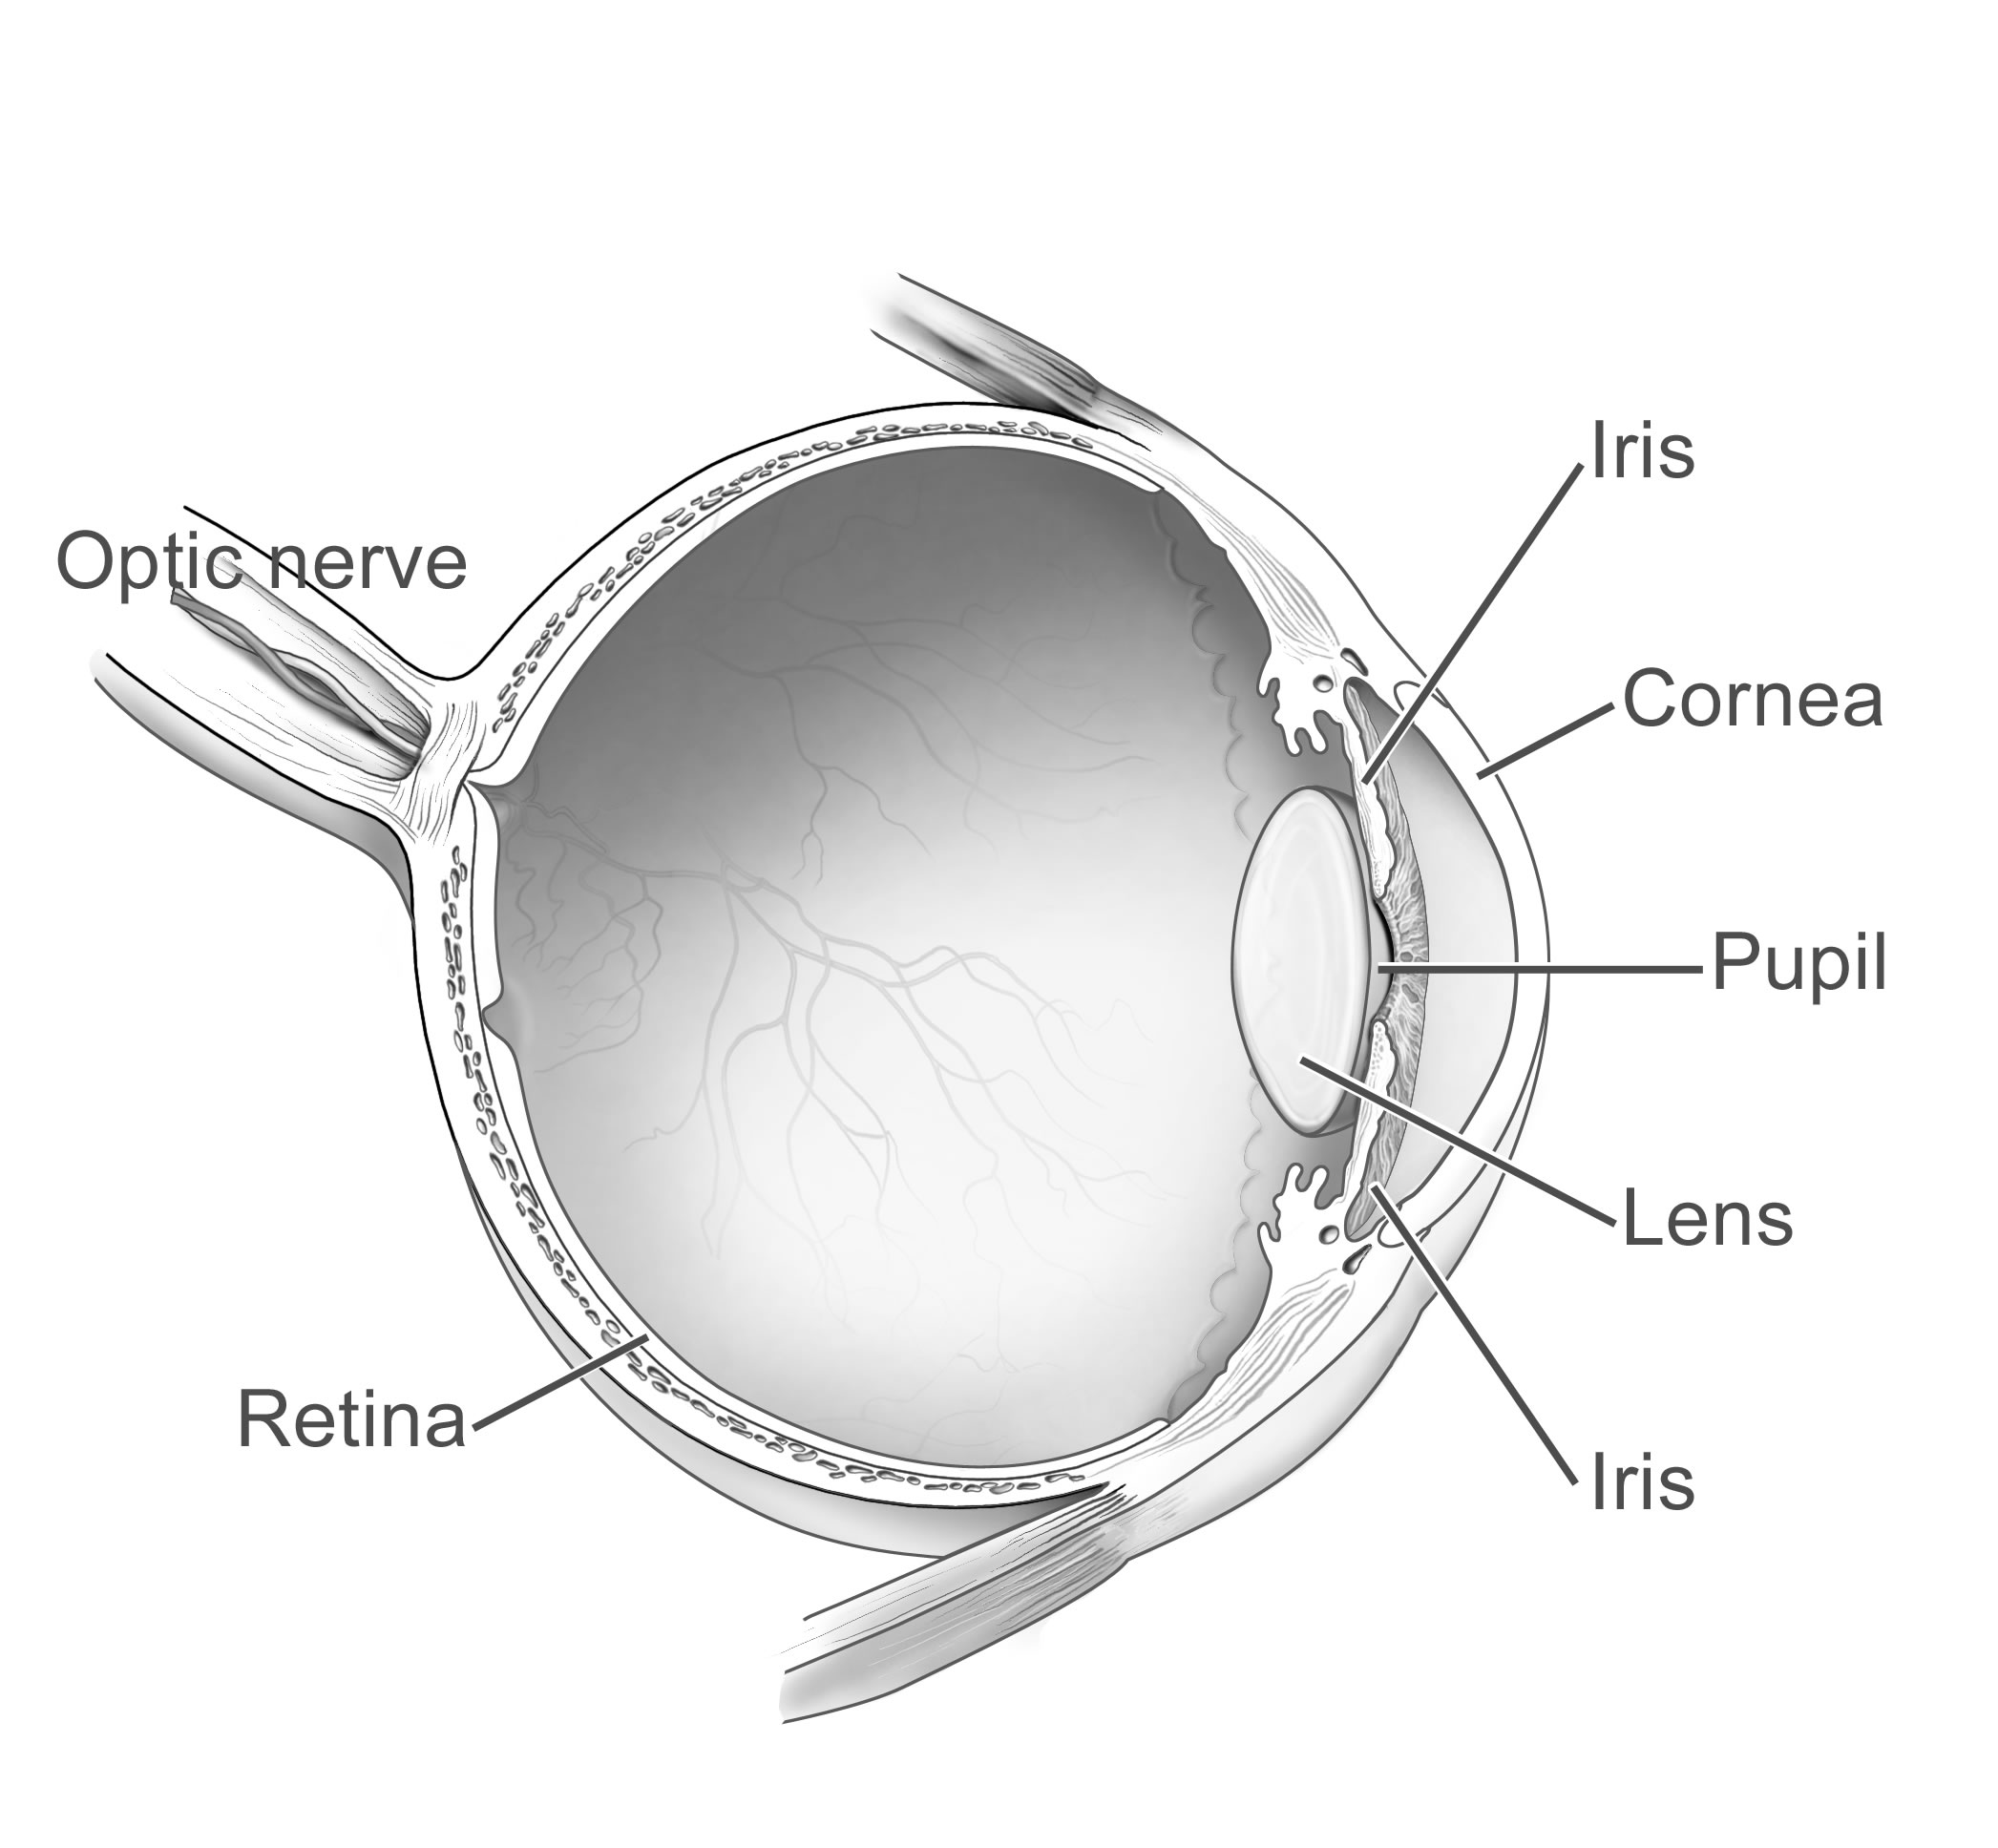 Diagram of a human eye